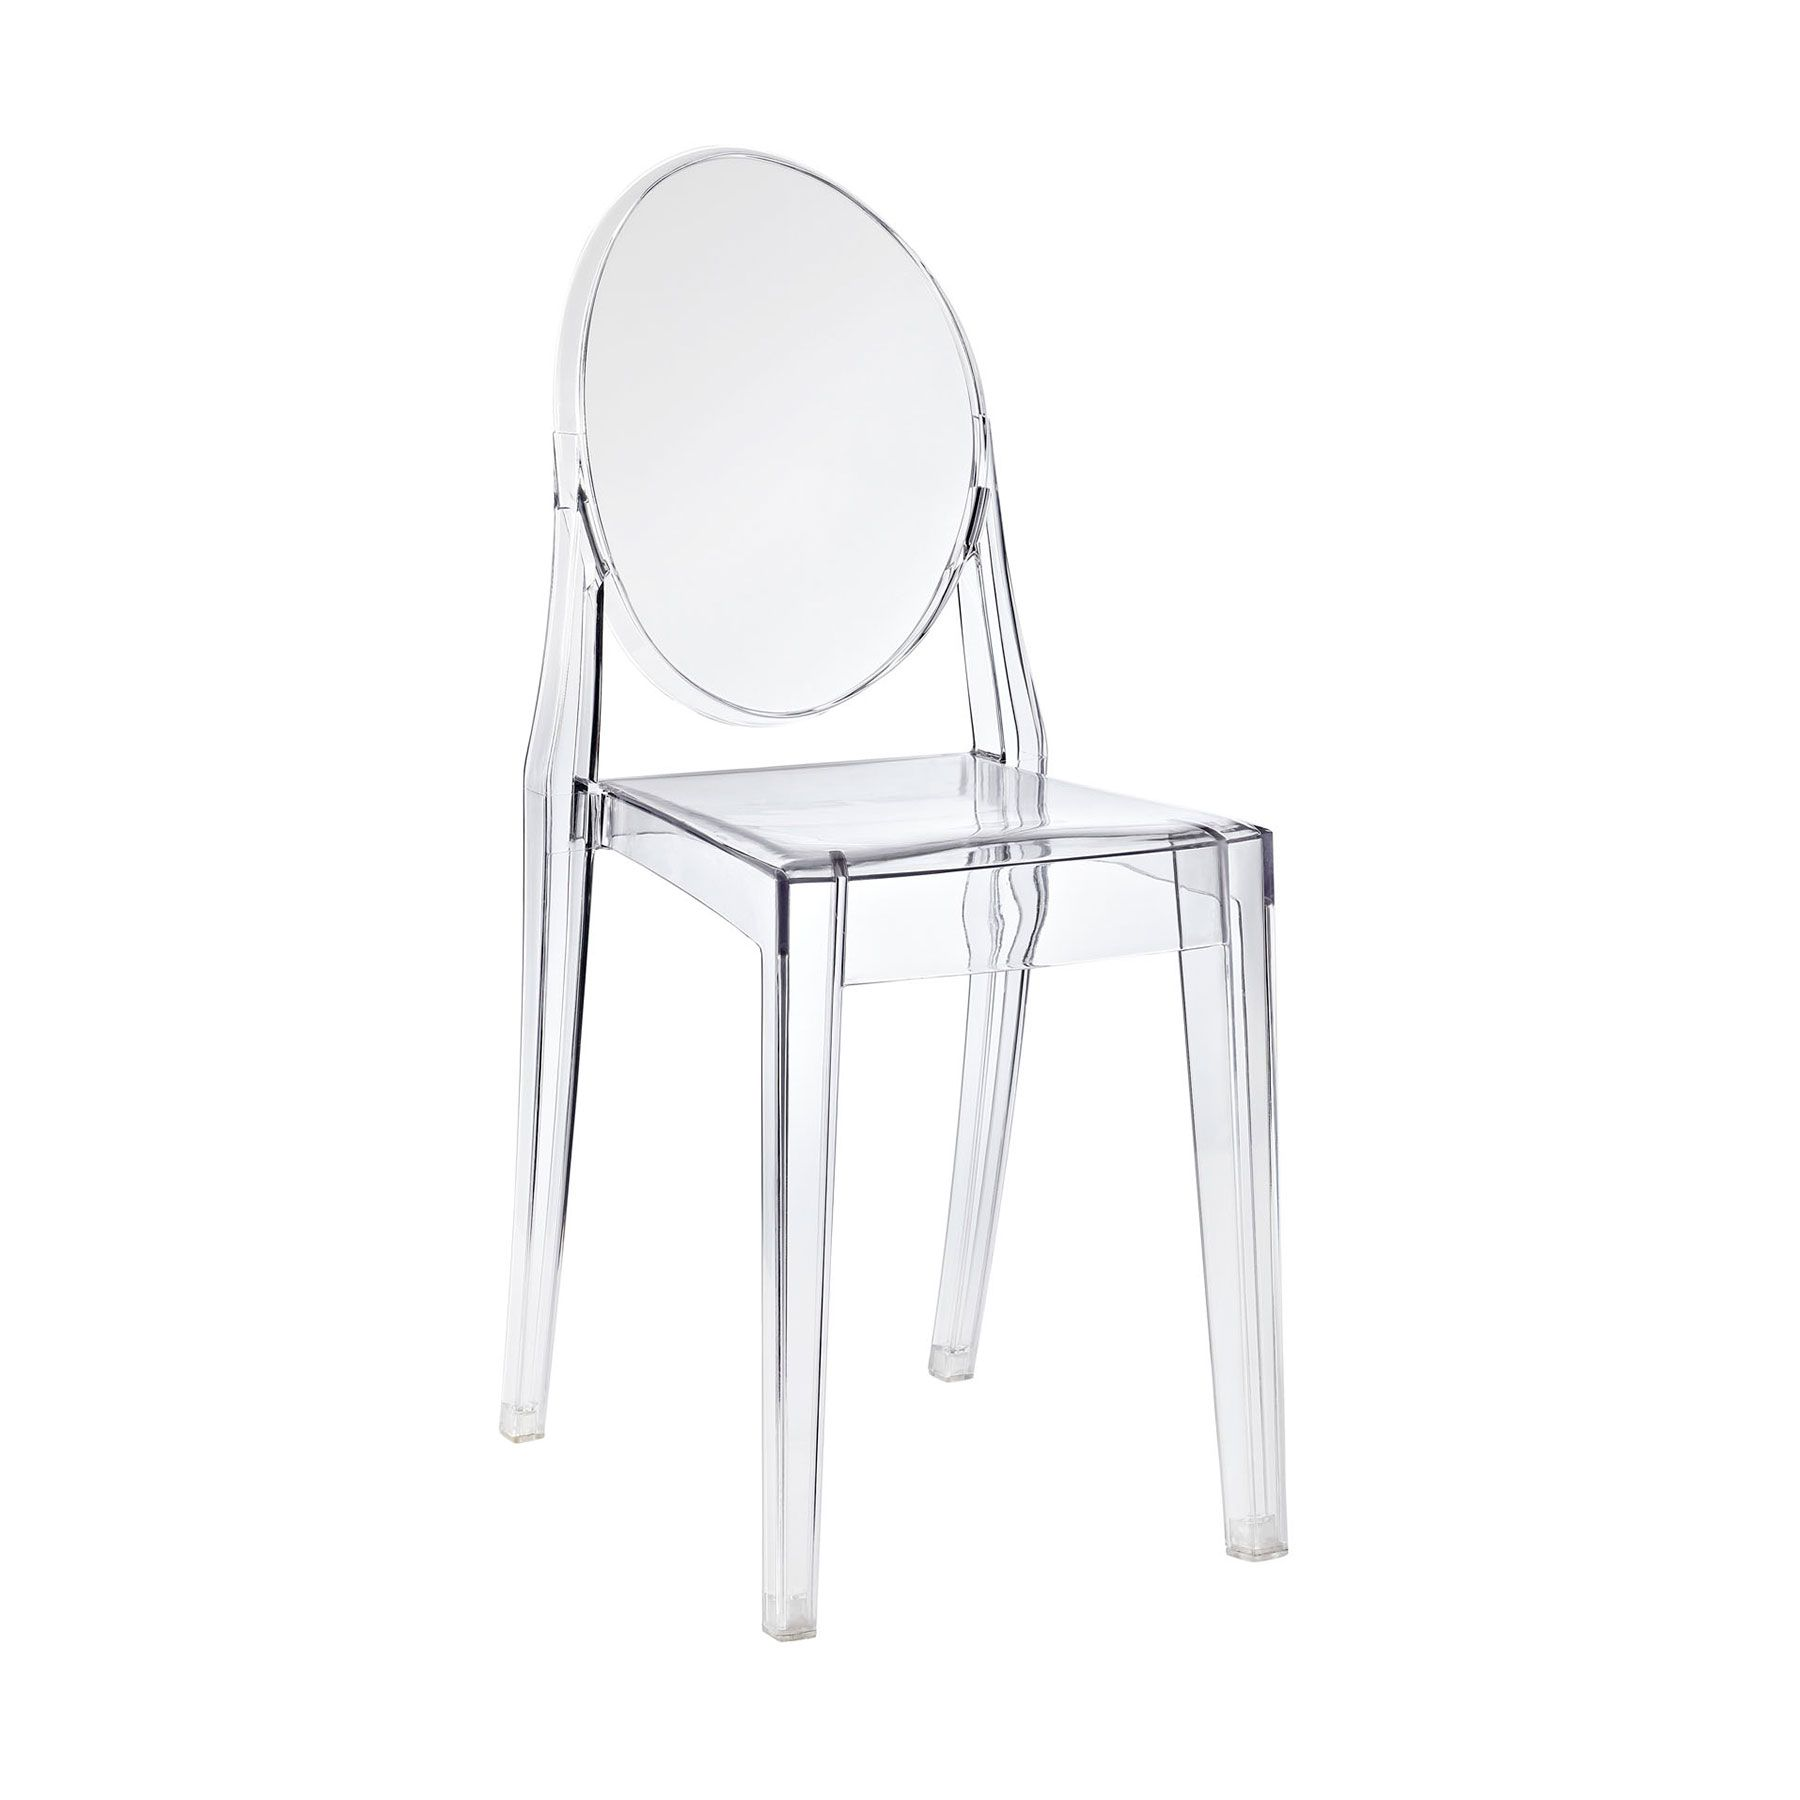 Sit down in the artfully crafted anywhere chair its sturdy frame